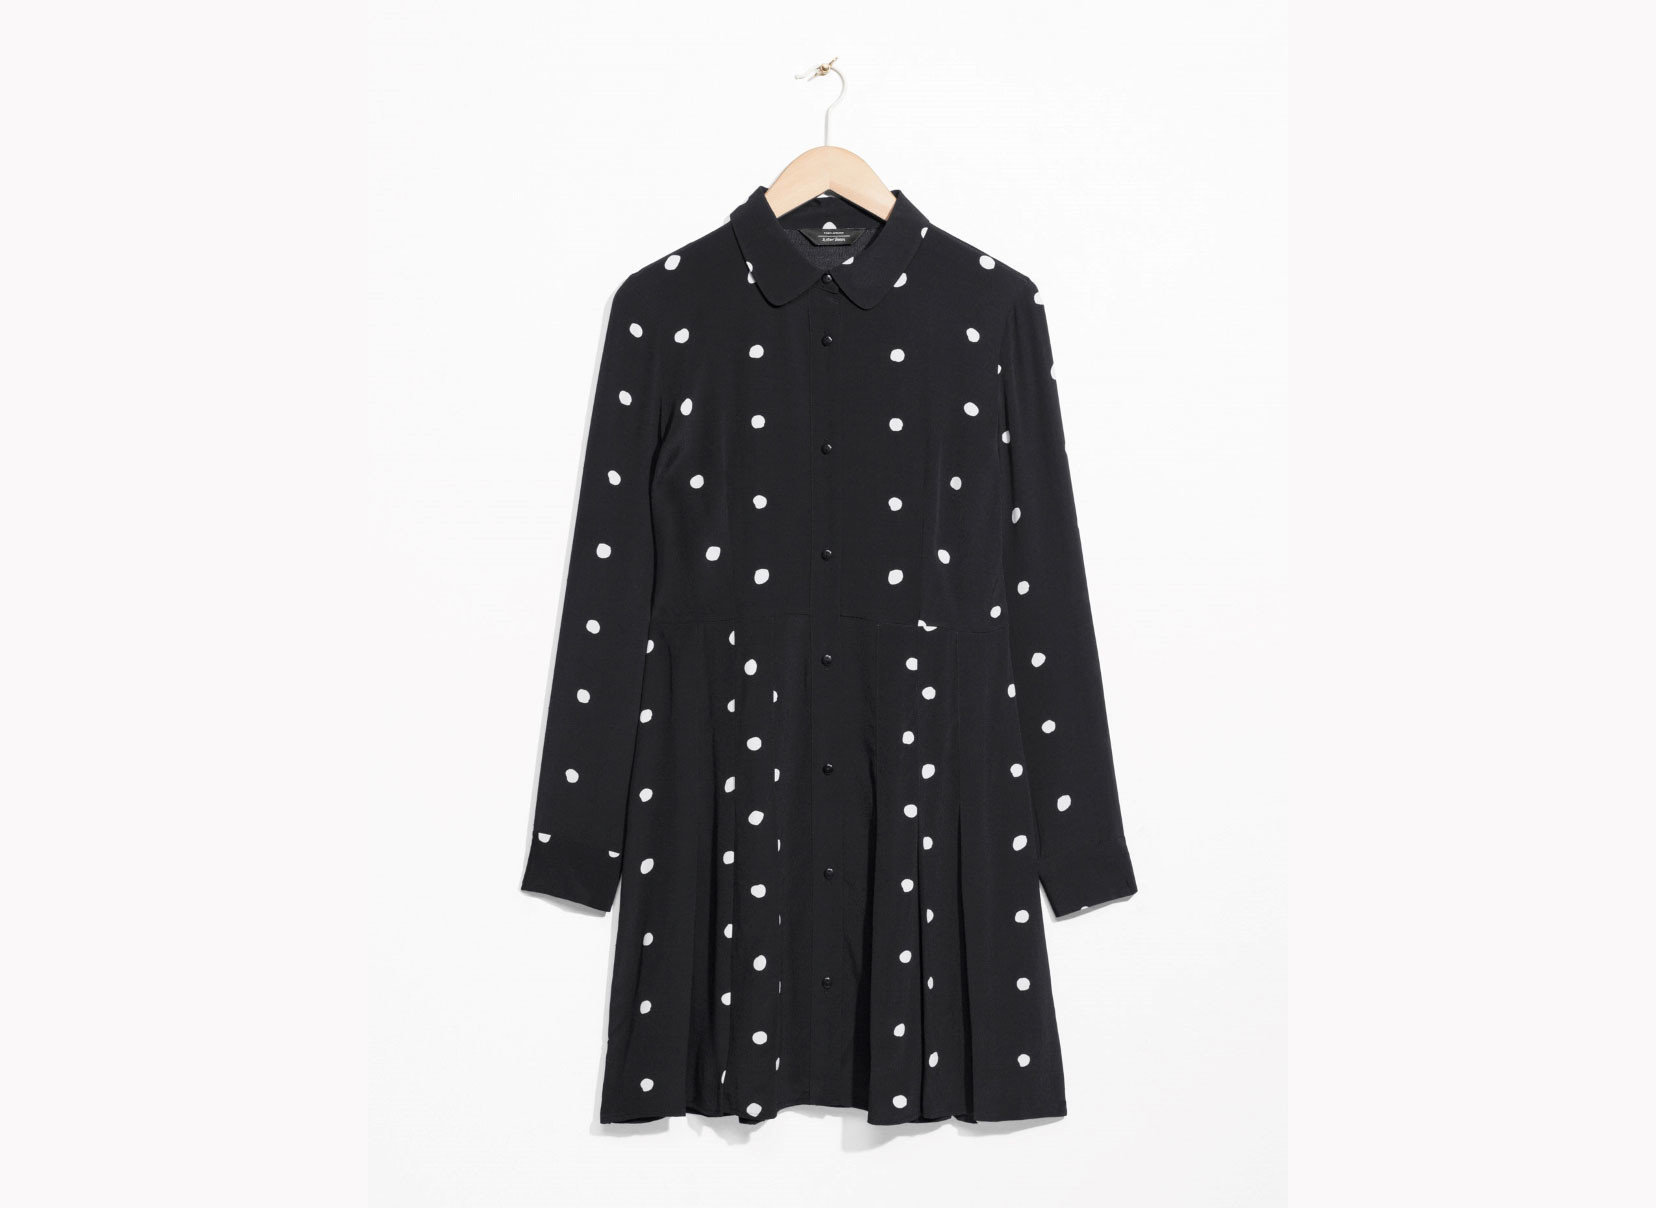 Style + Design Travel Shop clothing dress polka dot Design outerwear sleeve pattern coat collar overcoat day dress neck button clothes hanger